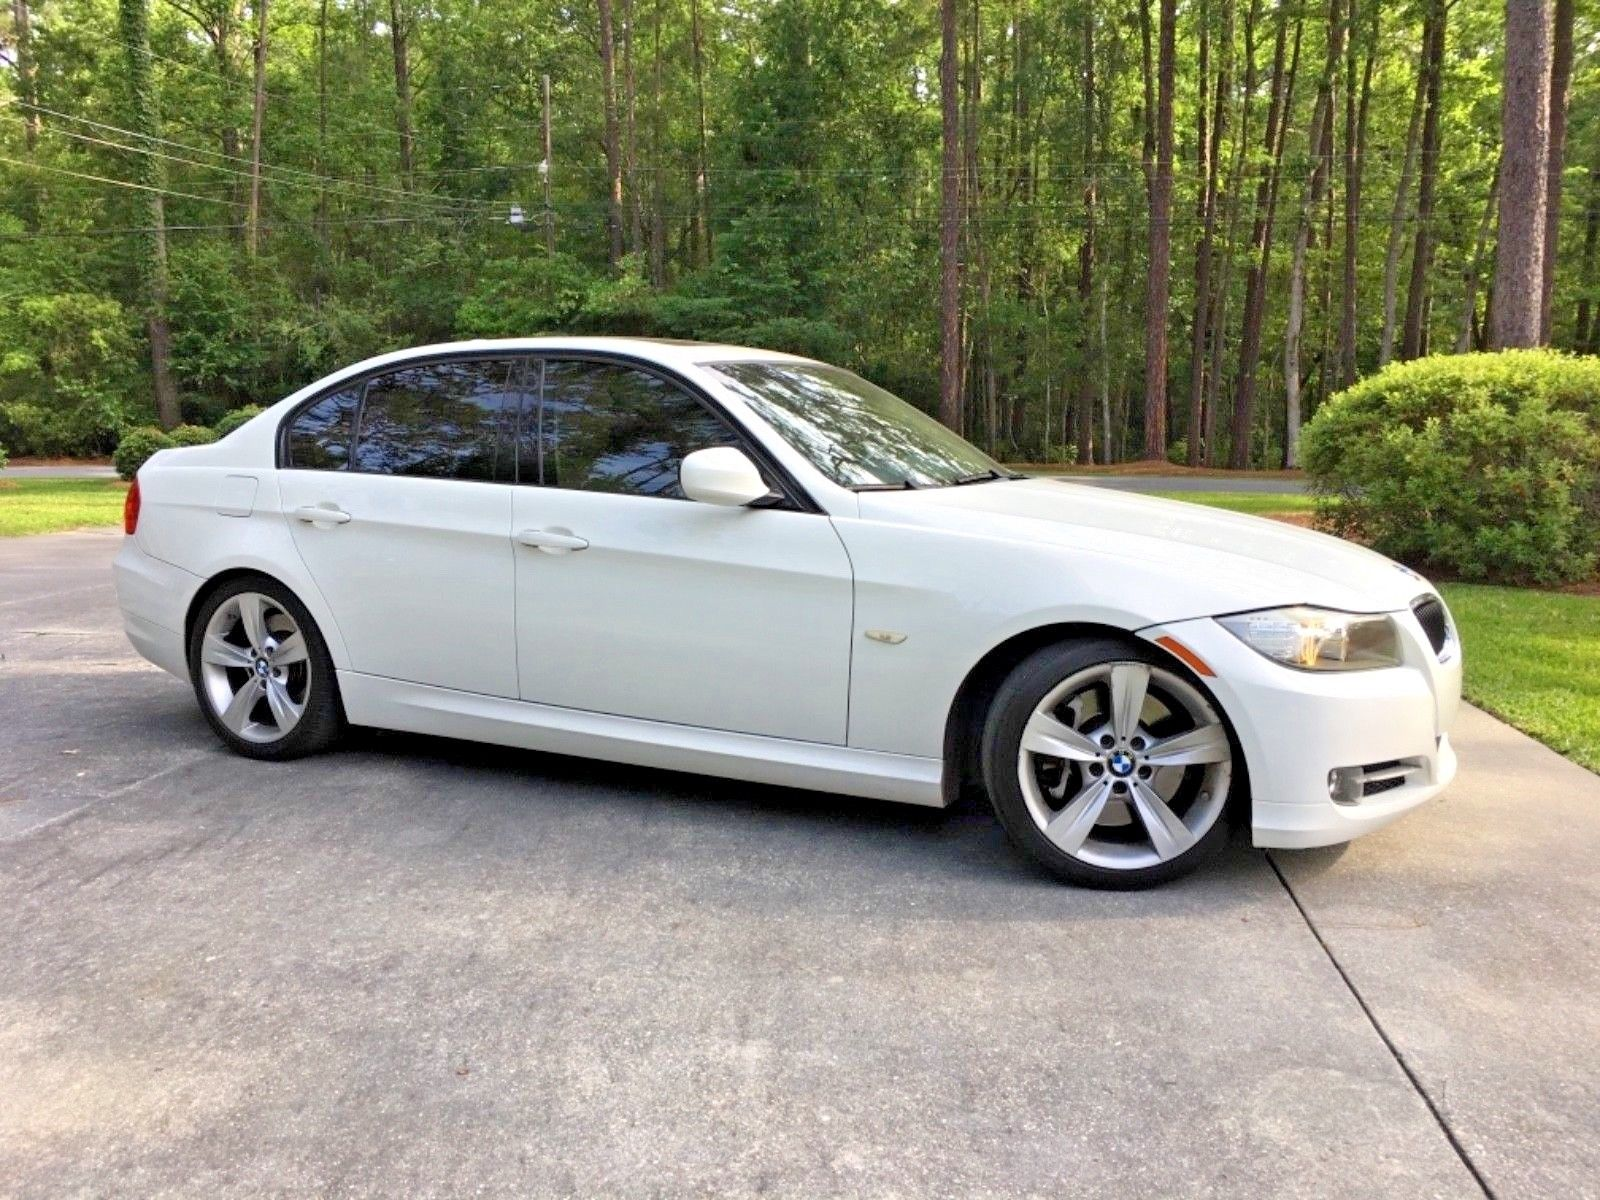 2009 Bmw 3 Series 335i 2009 Bmw 3 Series 335i Sedan 2017 2018 Is In Stock And For Sale Mycarboard Com